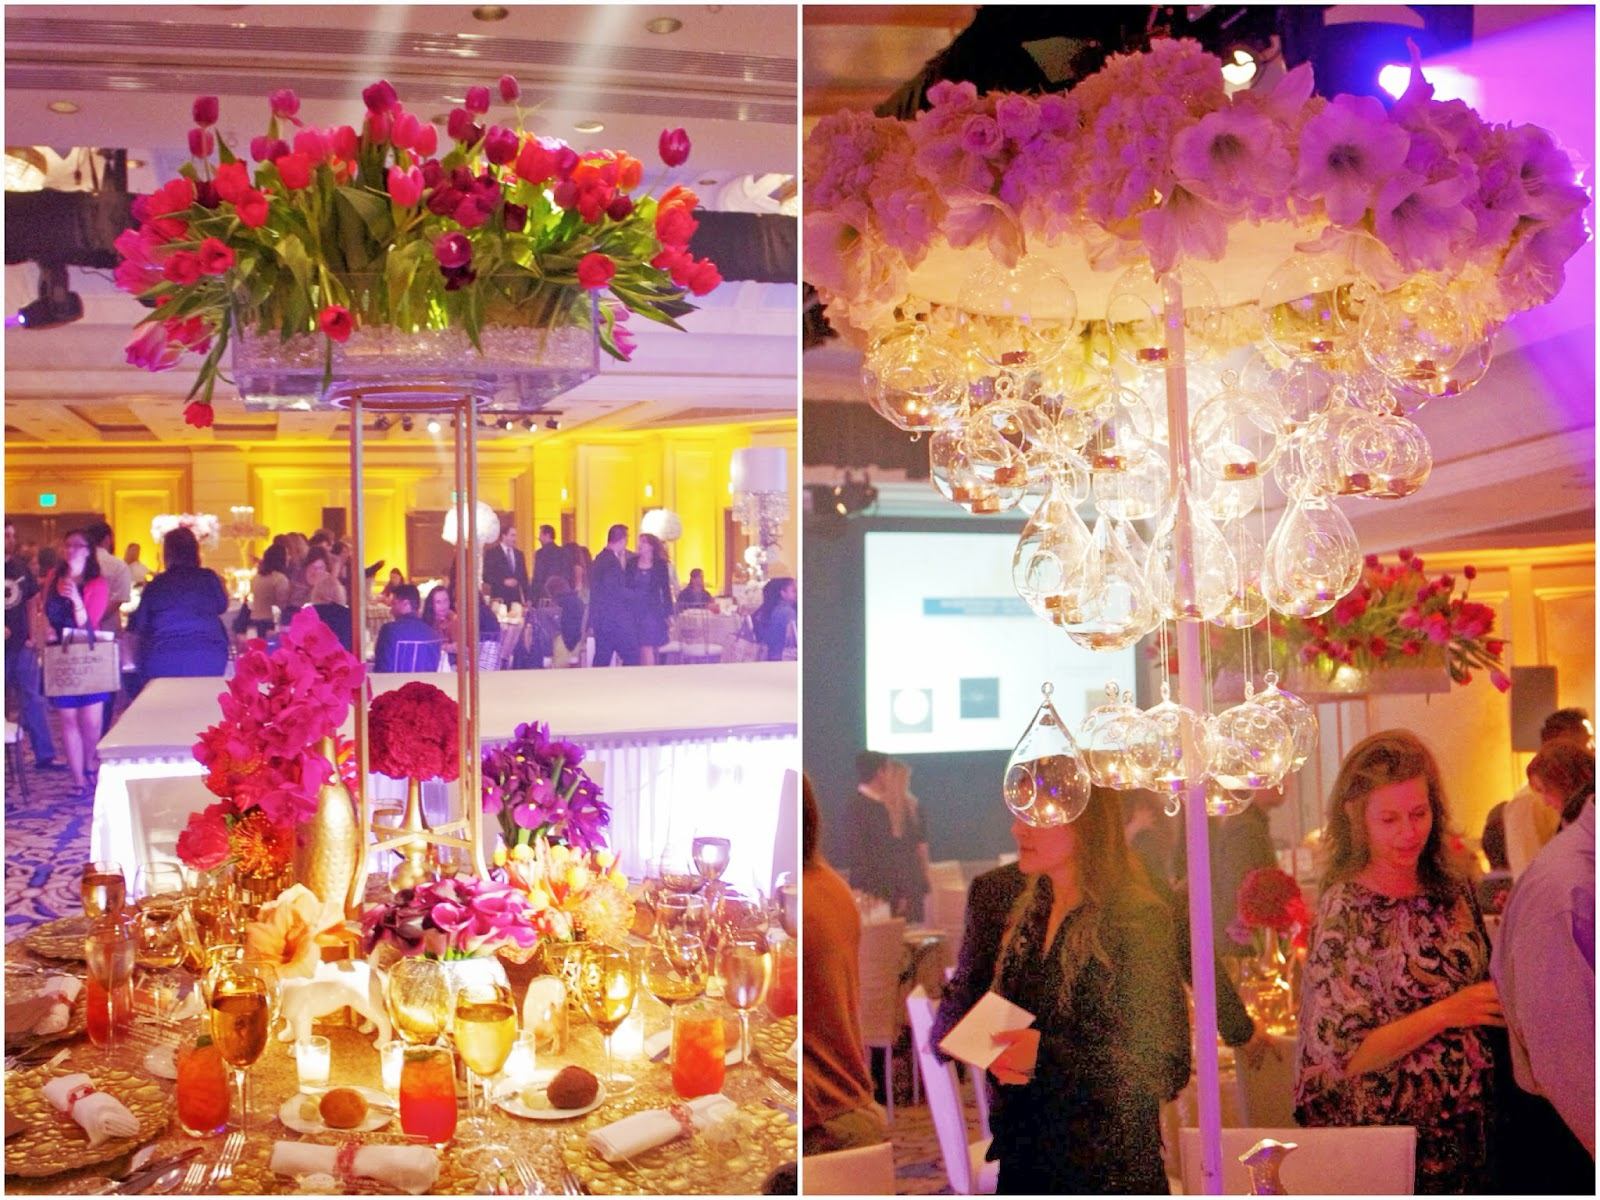 Extravagant wedding centerpieces